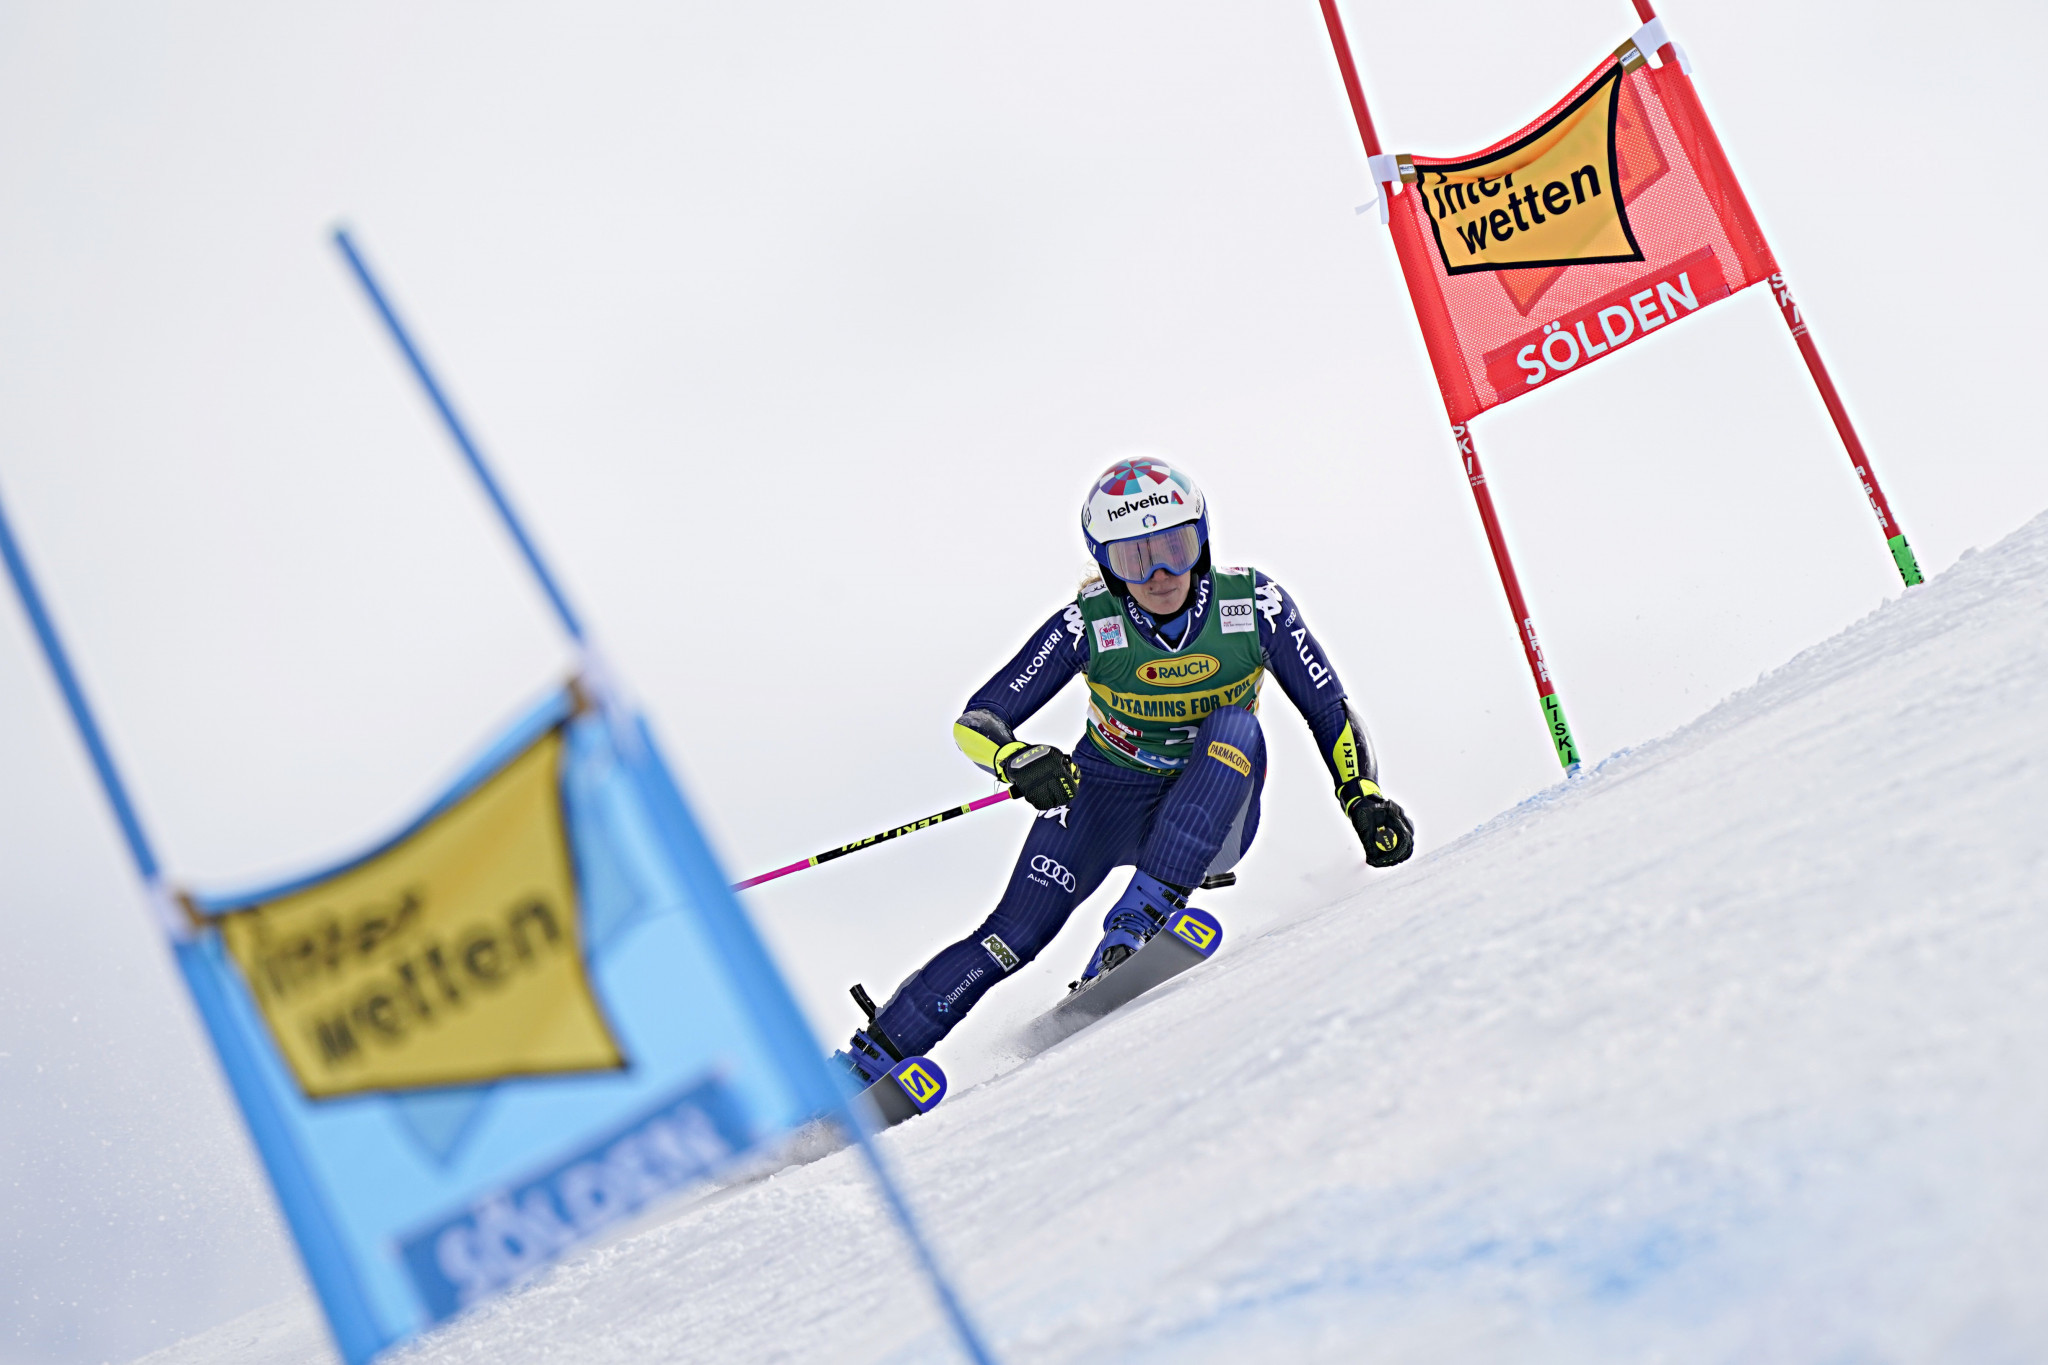 Marta Bassino got her Alpine Ski World Cup season off to a dream start with giant slalom victory in Sölden ©Getty Images